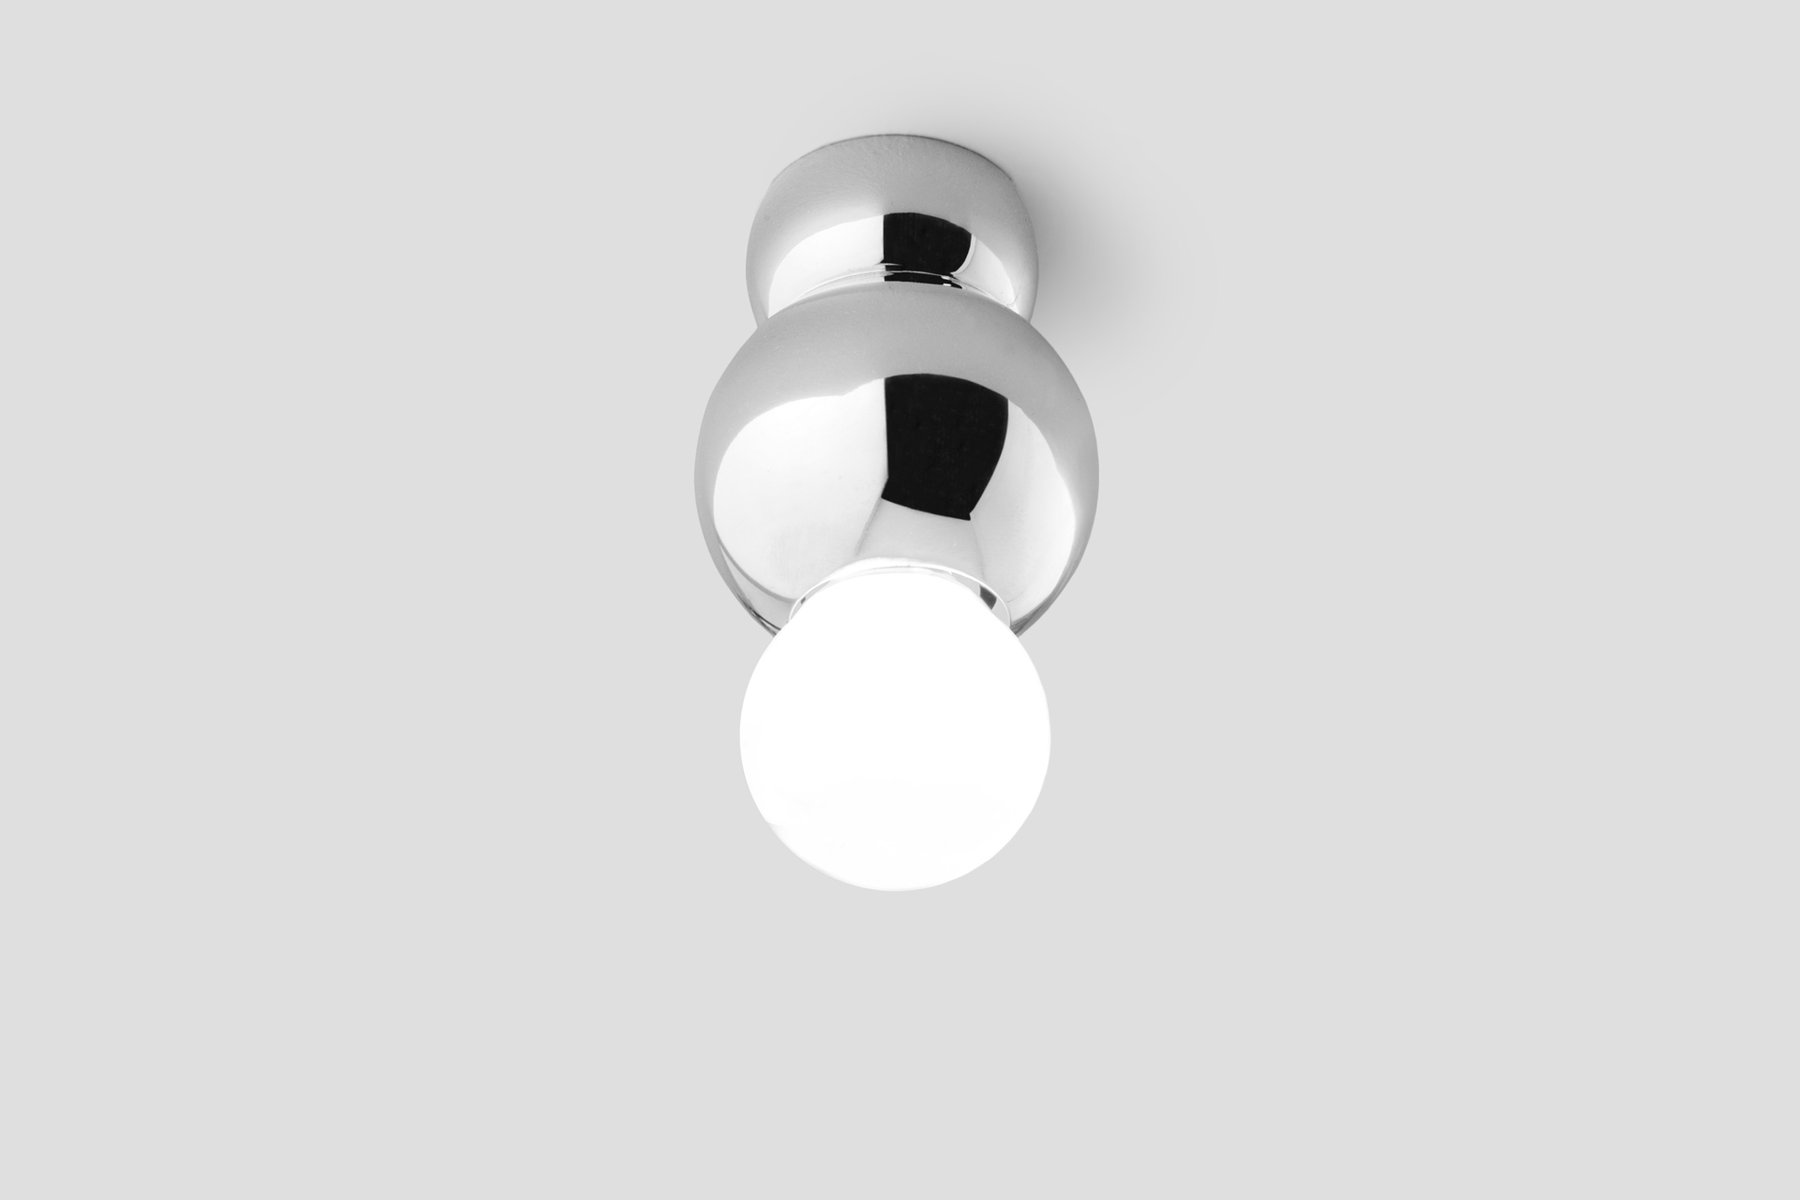 Silver Ceiling-Mounted Ball Light by Michael Anastassiades